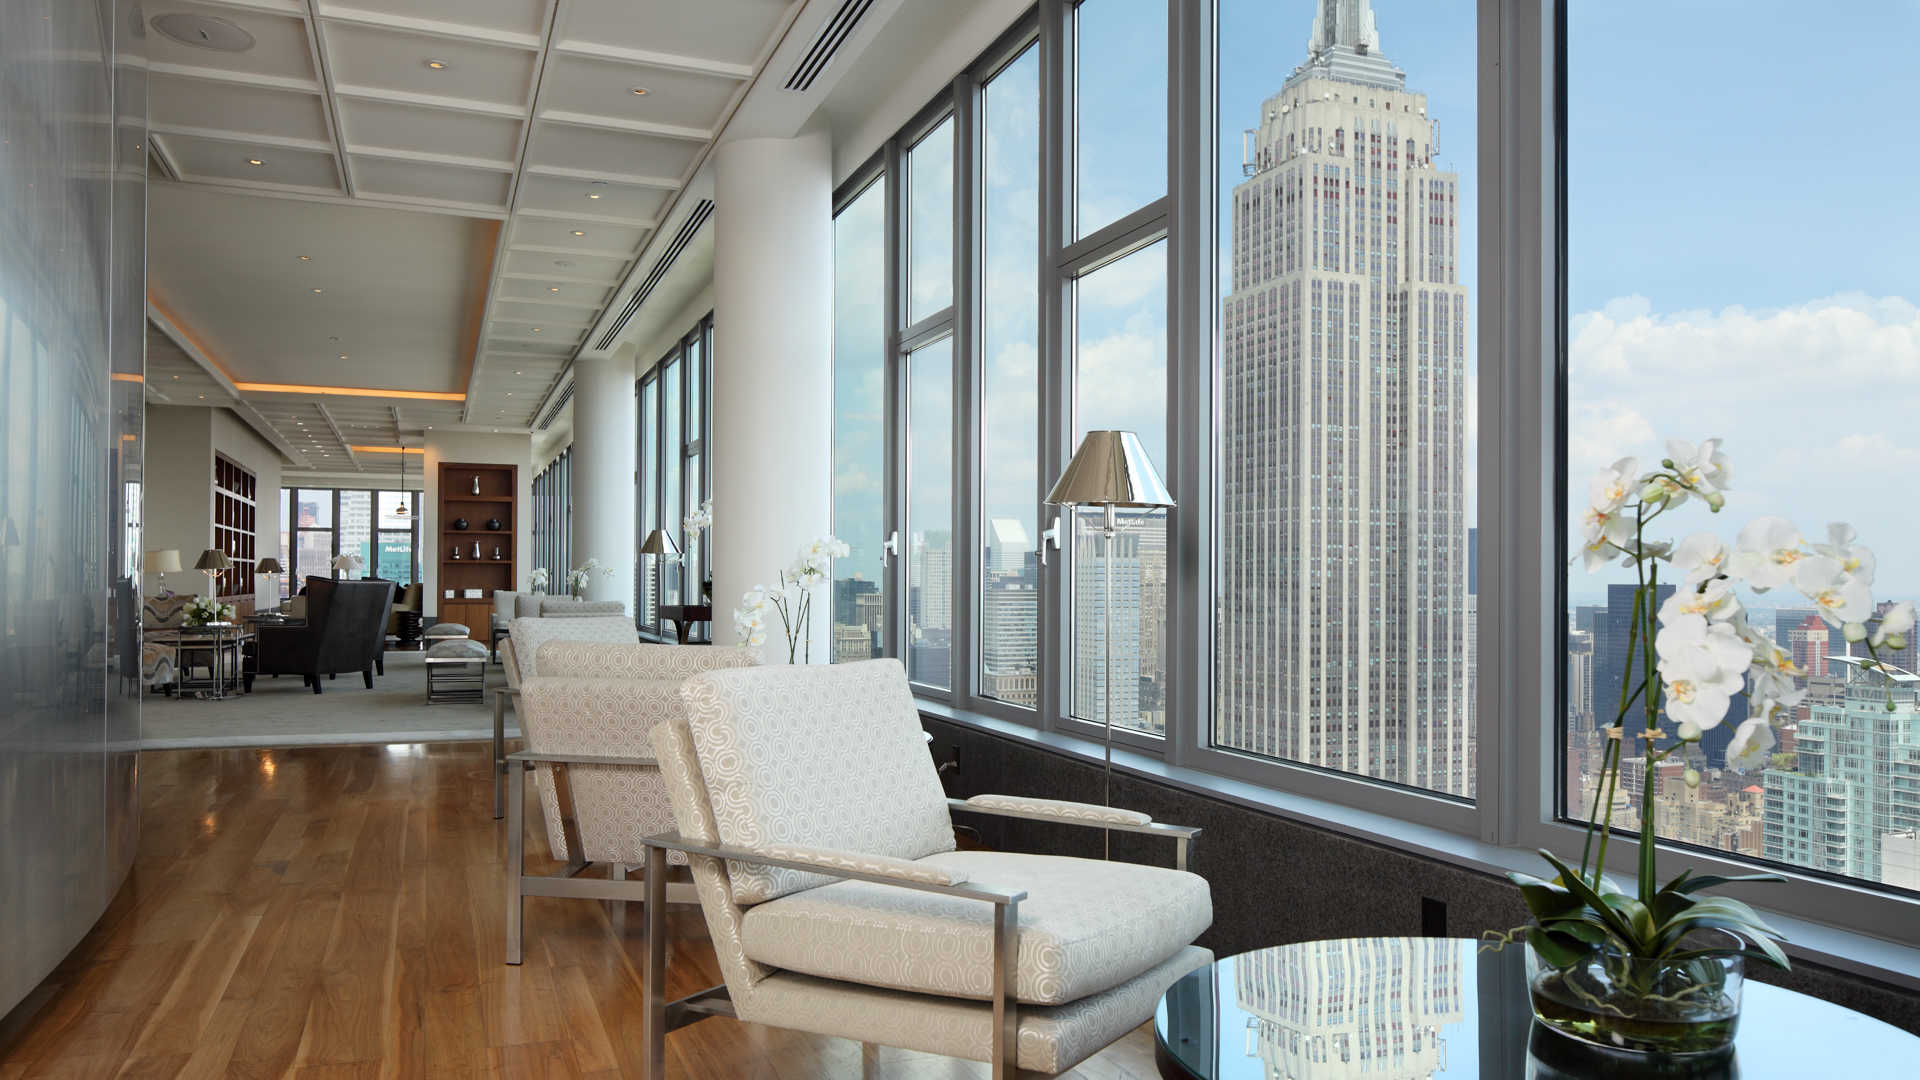 Cloud Lounge with View of Empire State Building